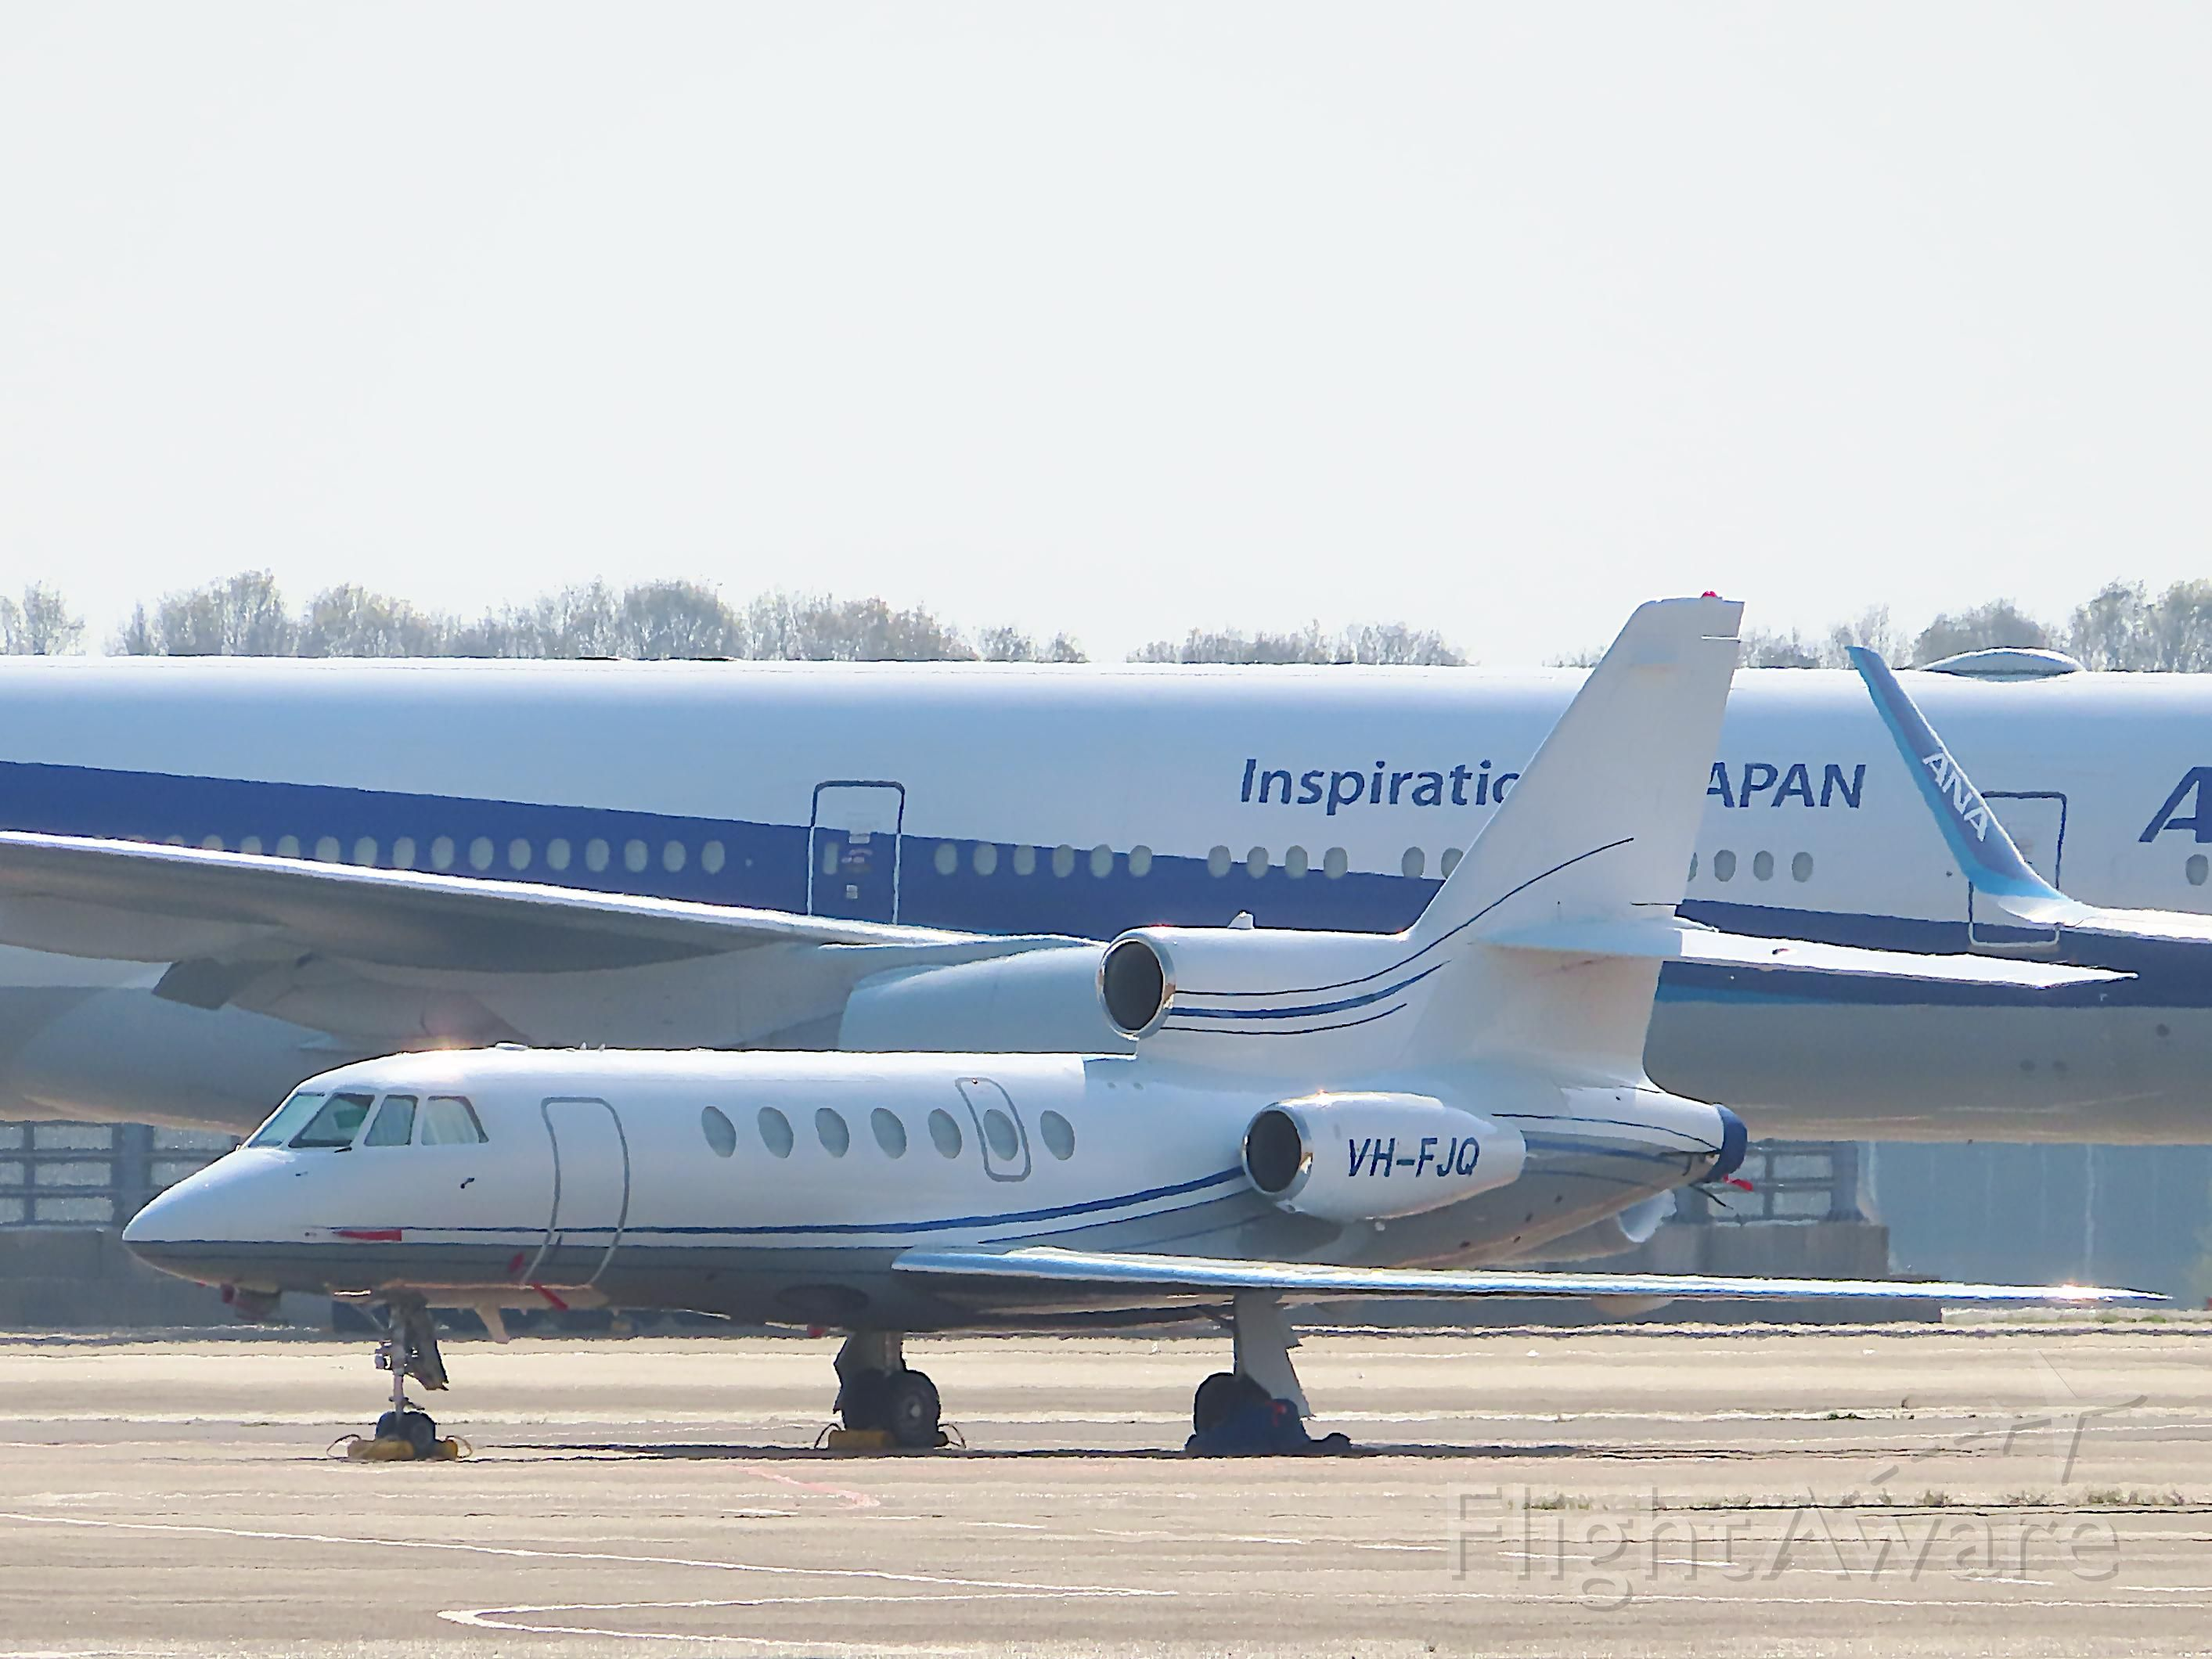 Dassault Falcon 5X (VH-FJQ) - I took this picture on Apr 26, 2020.